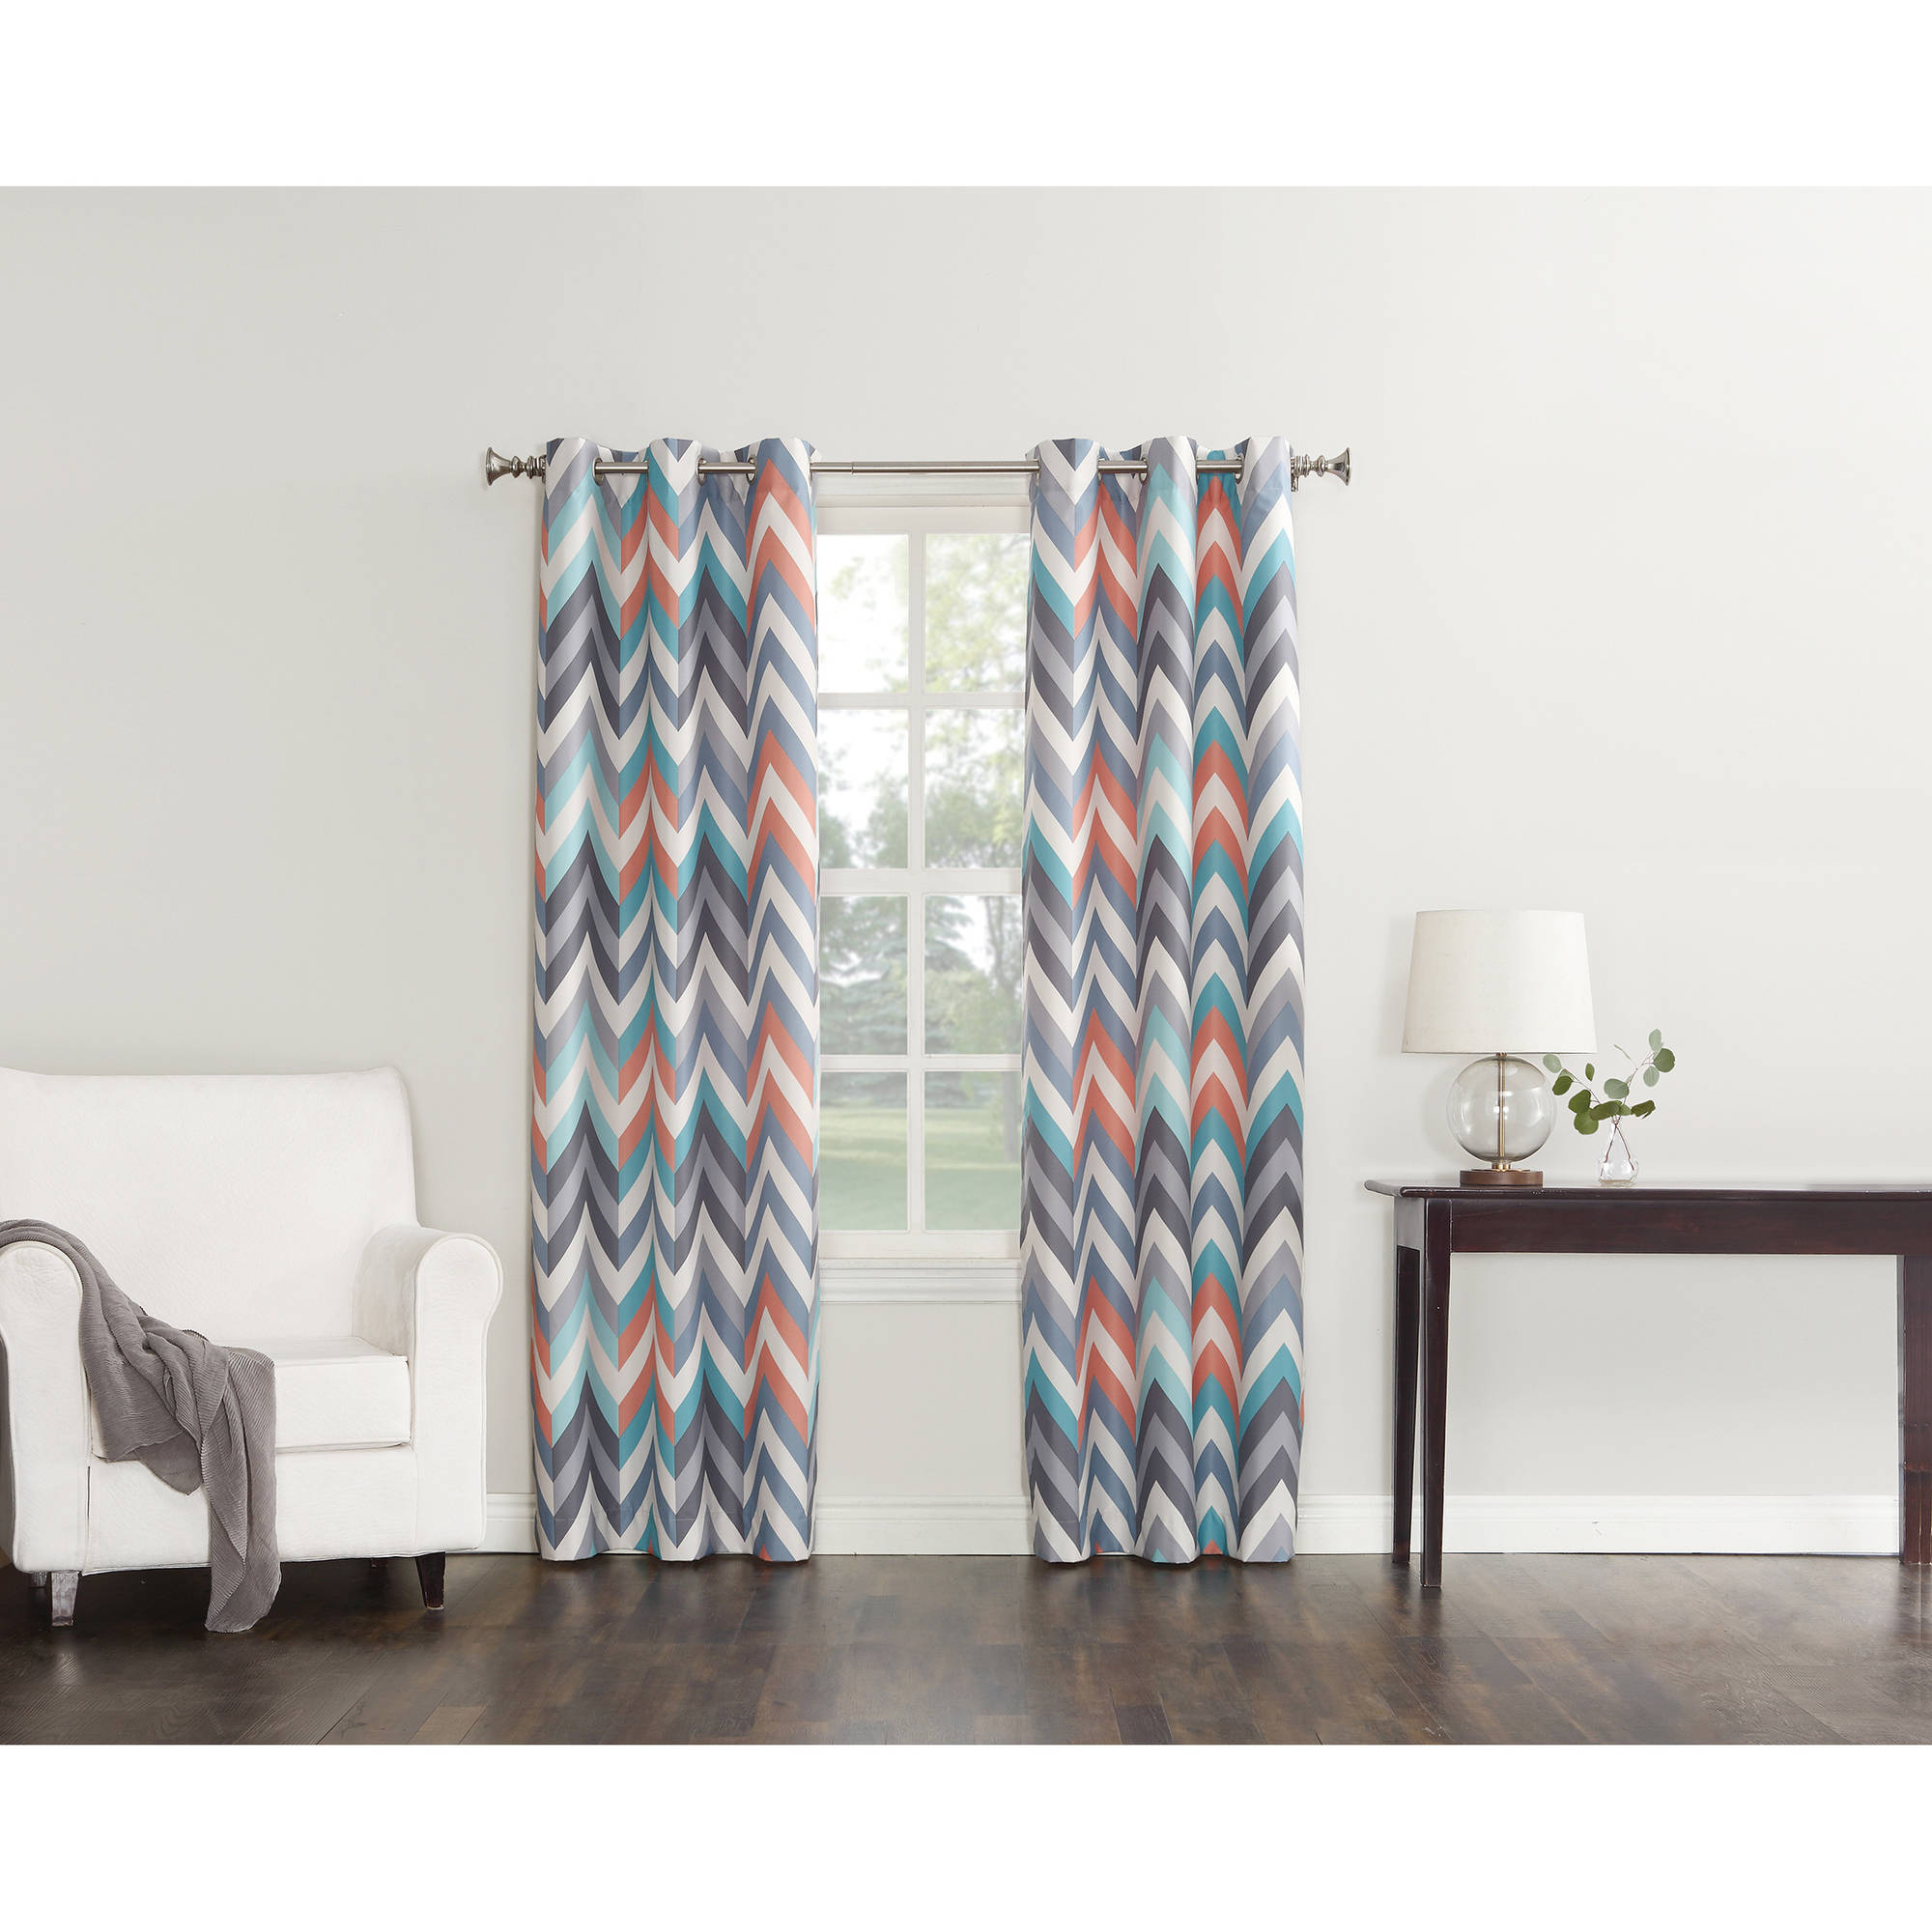 Sun Zero Largo Chevron Print Thermal Insulated Energy Efficient Curtain Panel